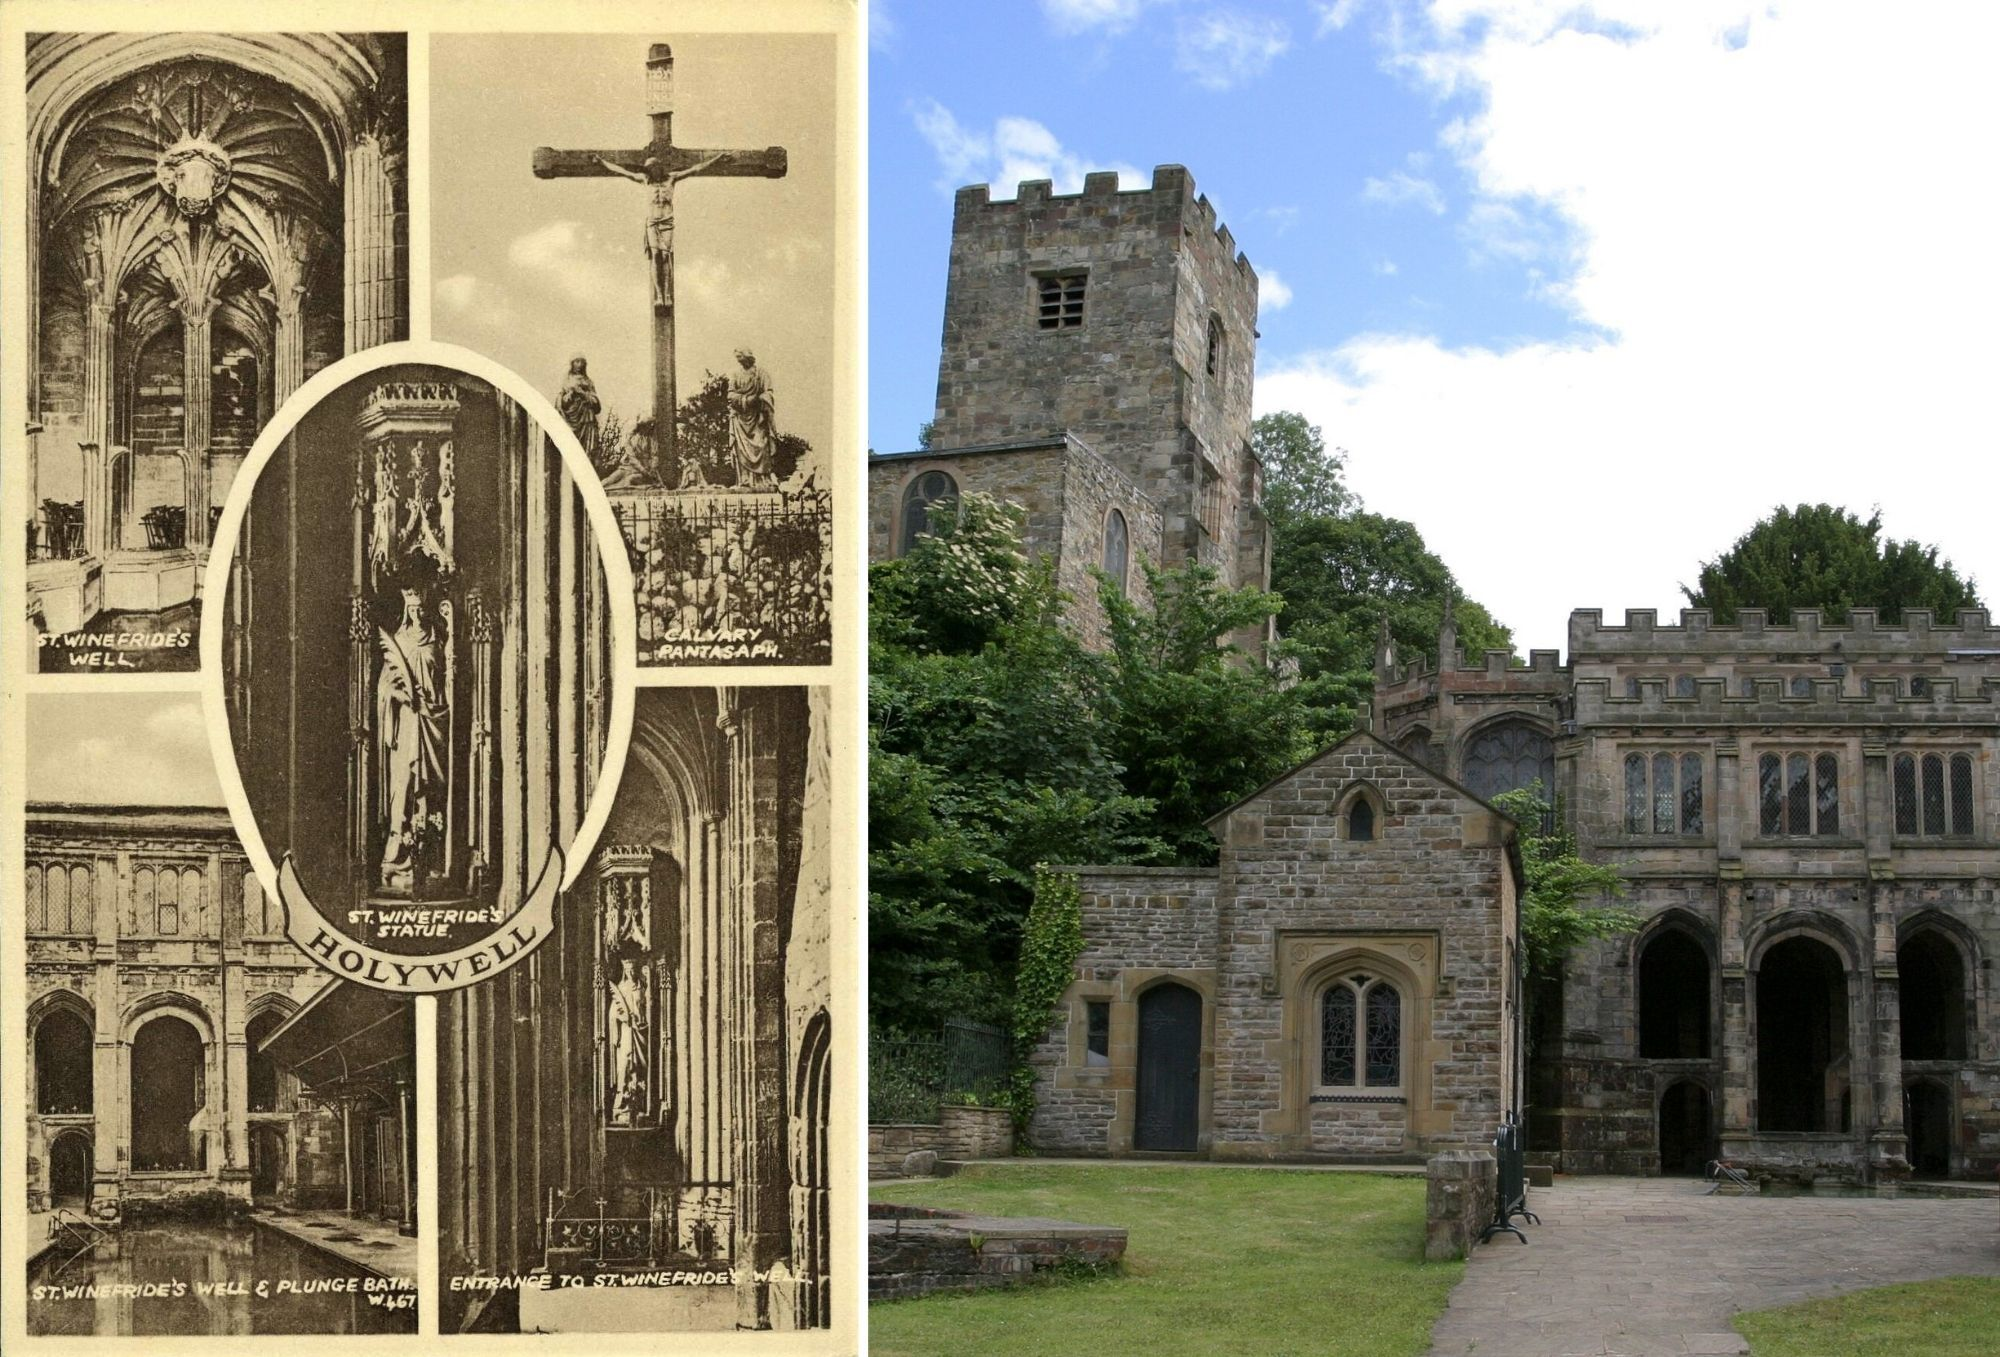 Sacred setting for town's wealth of history